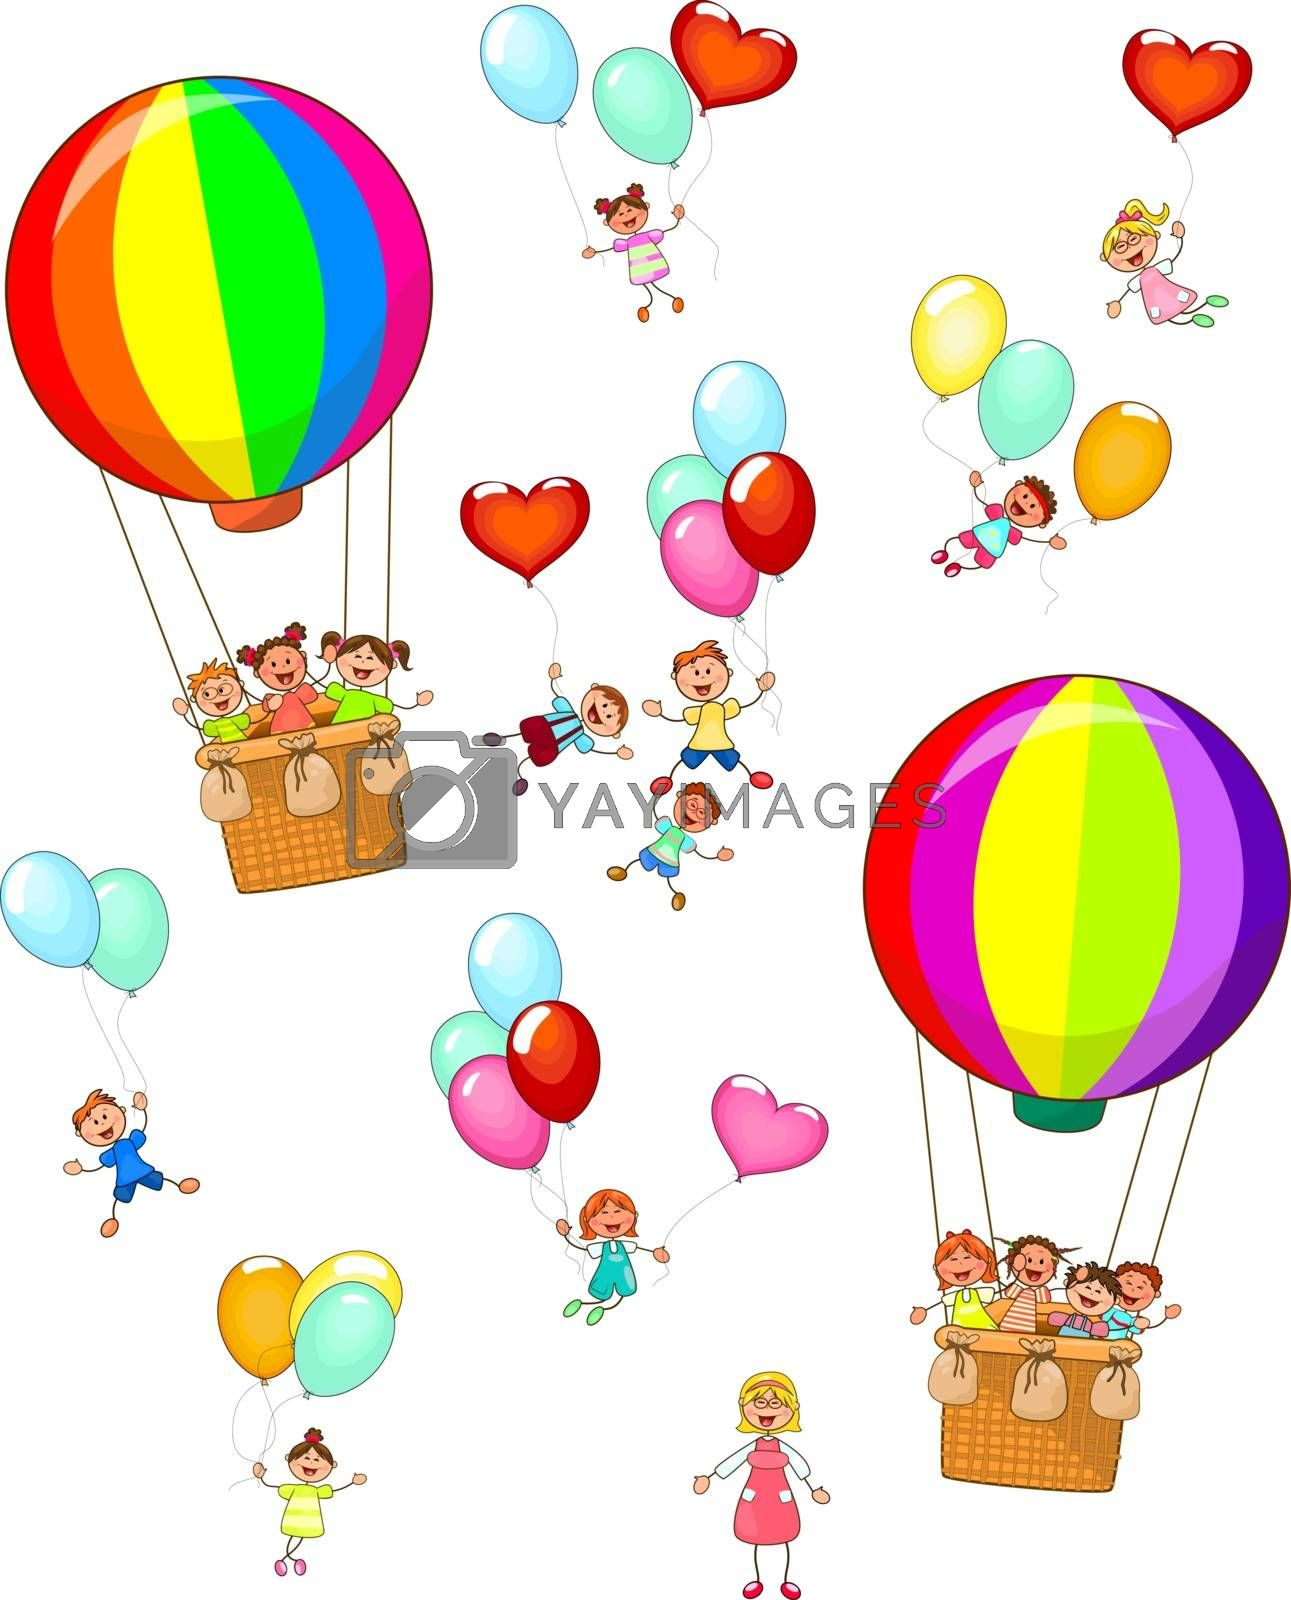 Small children fly on balloons by liolle